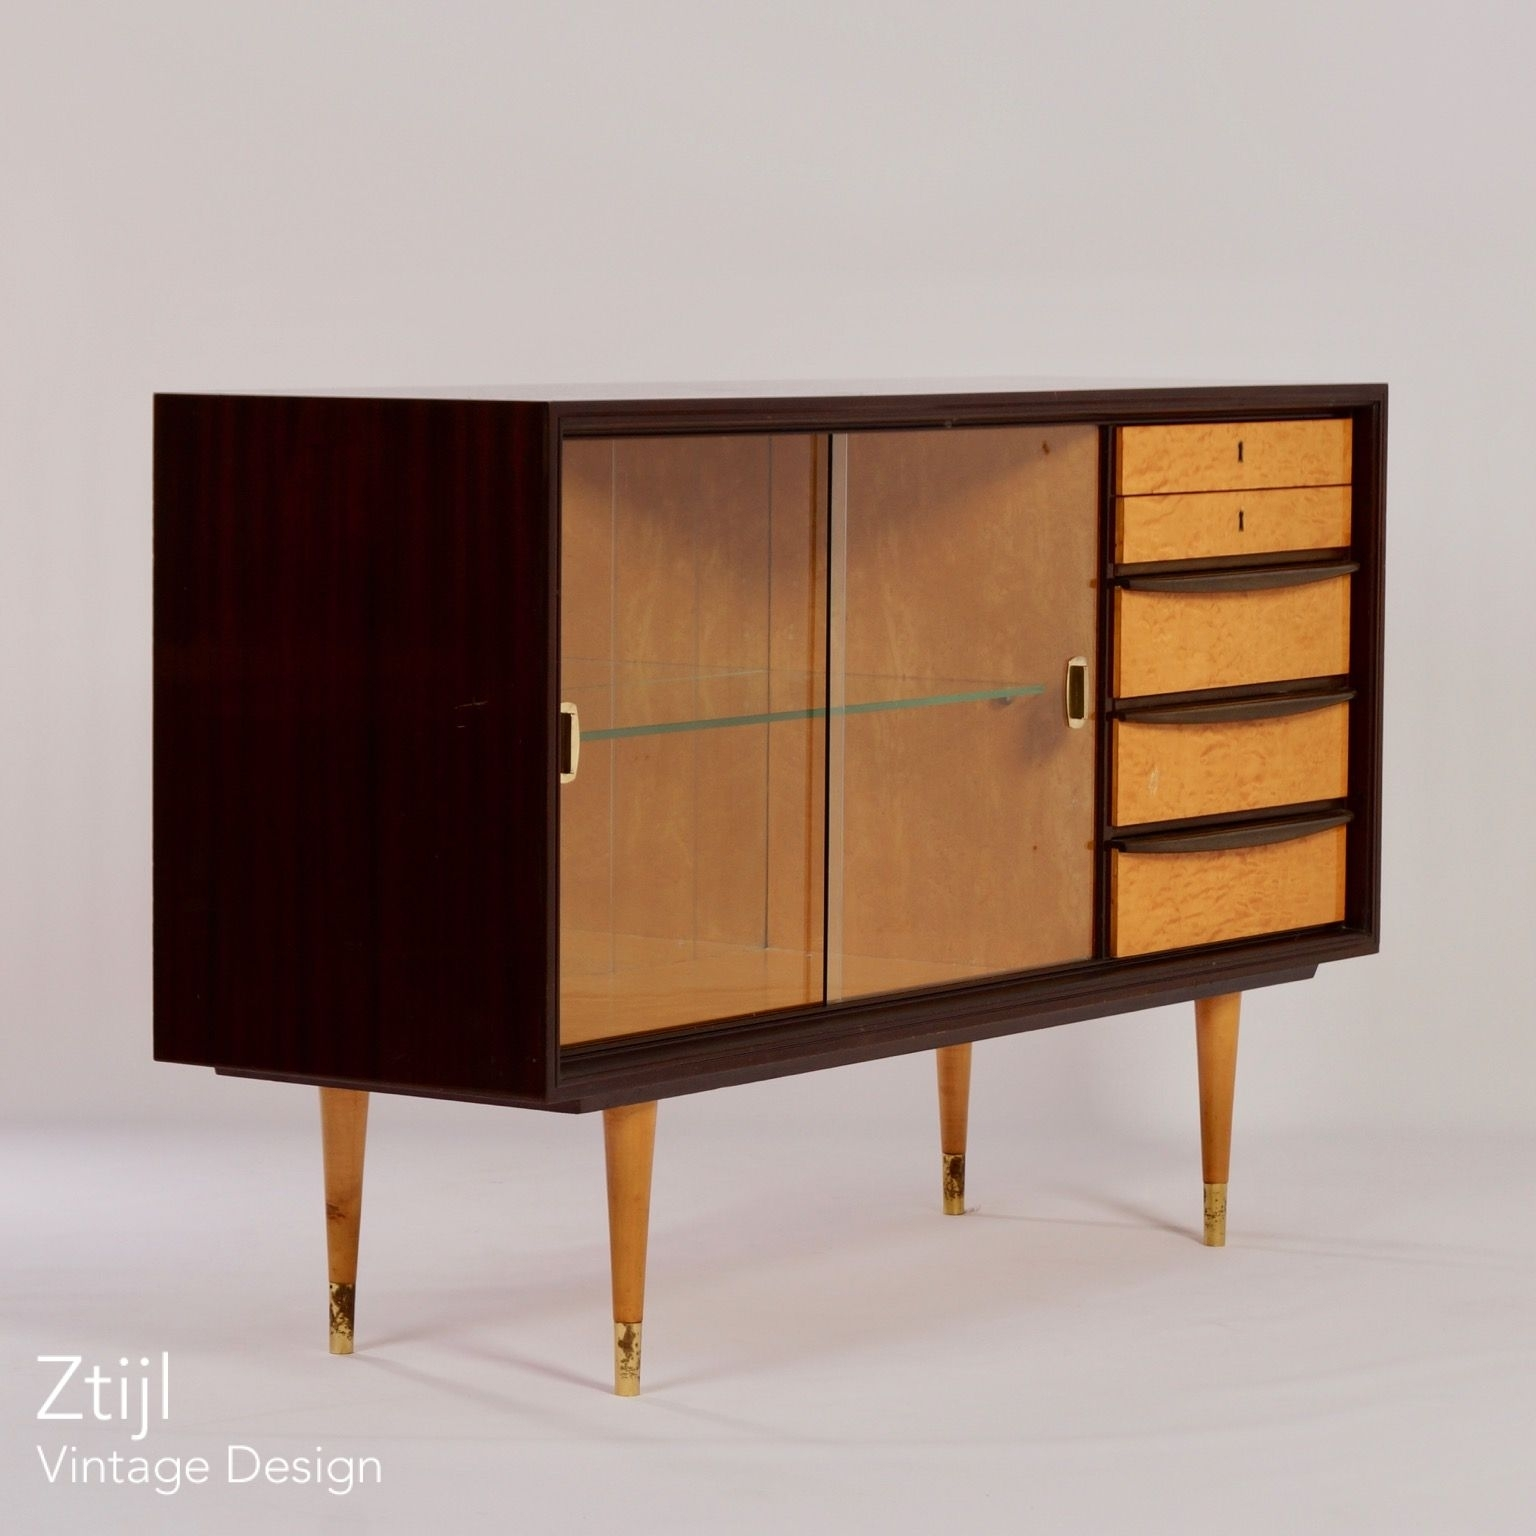 Mahogany Sideboard With Showcase And Brass Details, 1960S - Vintage intended for Vintage 8 Glass Sideboards (Image 13 of 30)